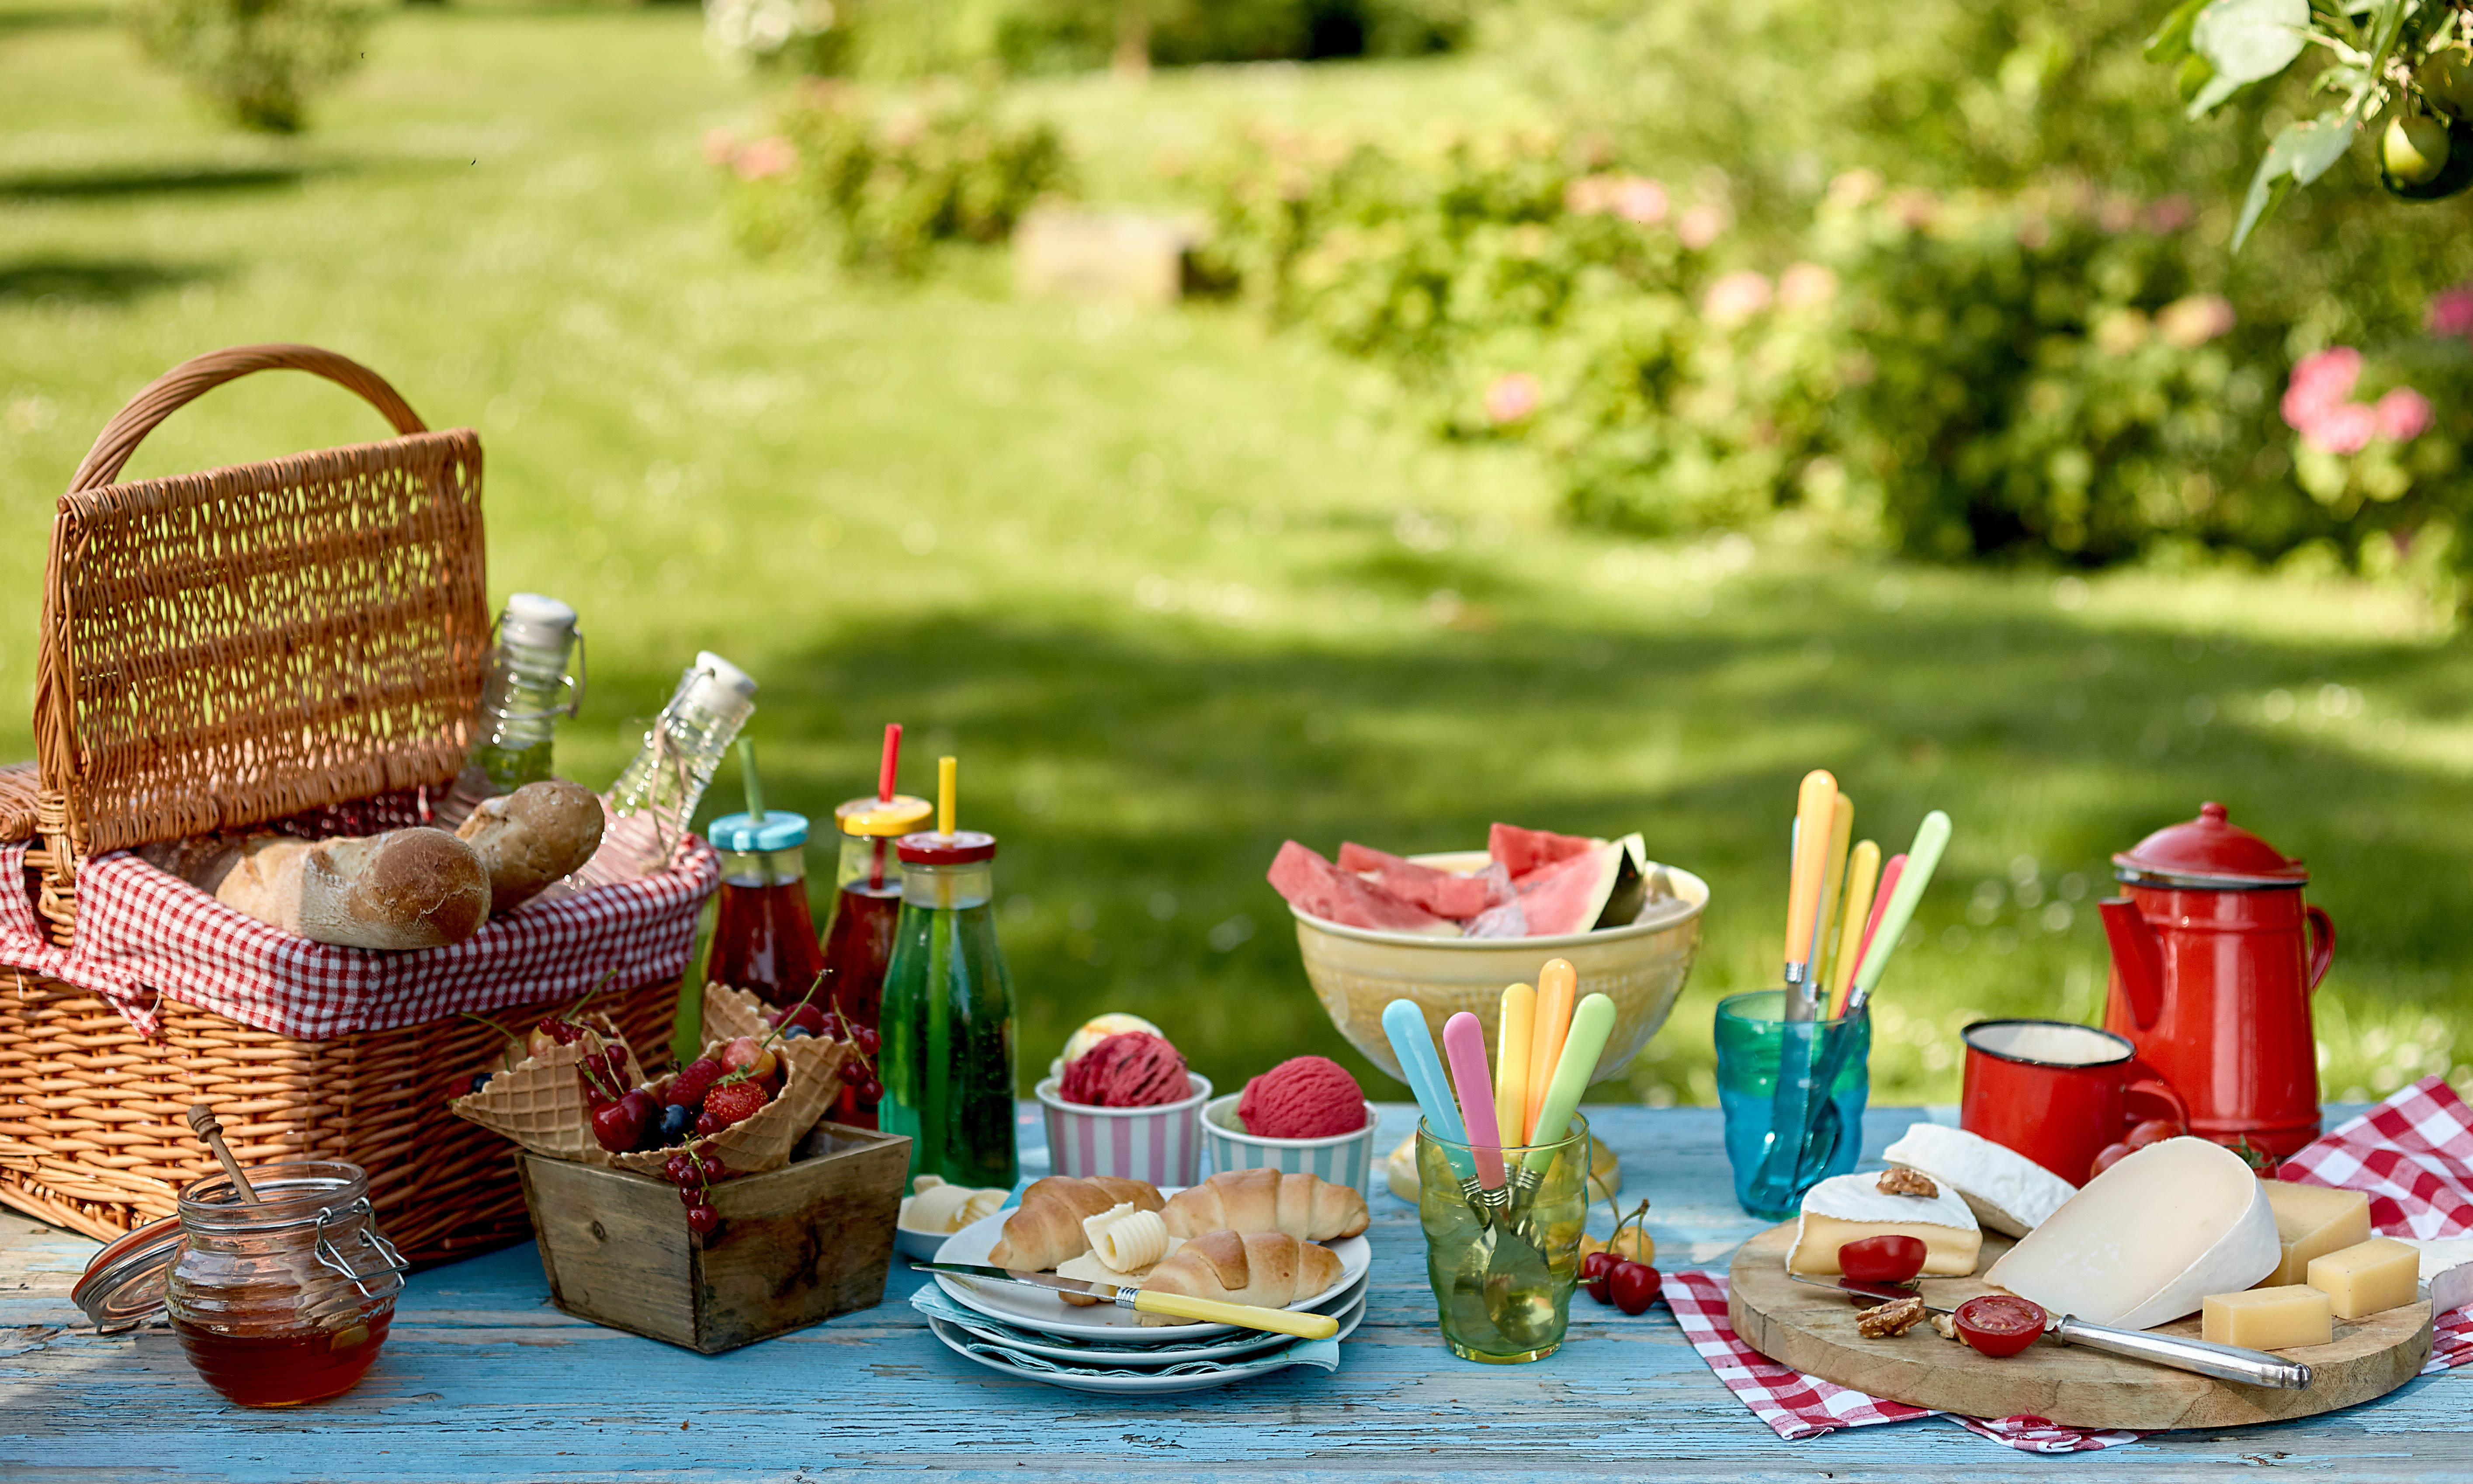 9 Top Tips to a Sustainable Picnic